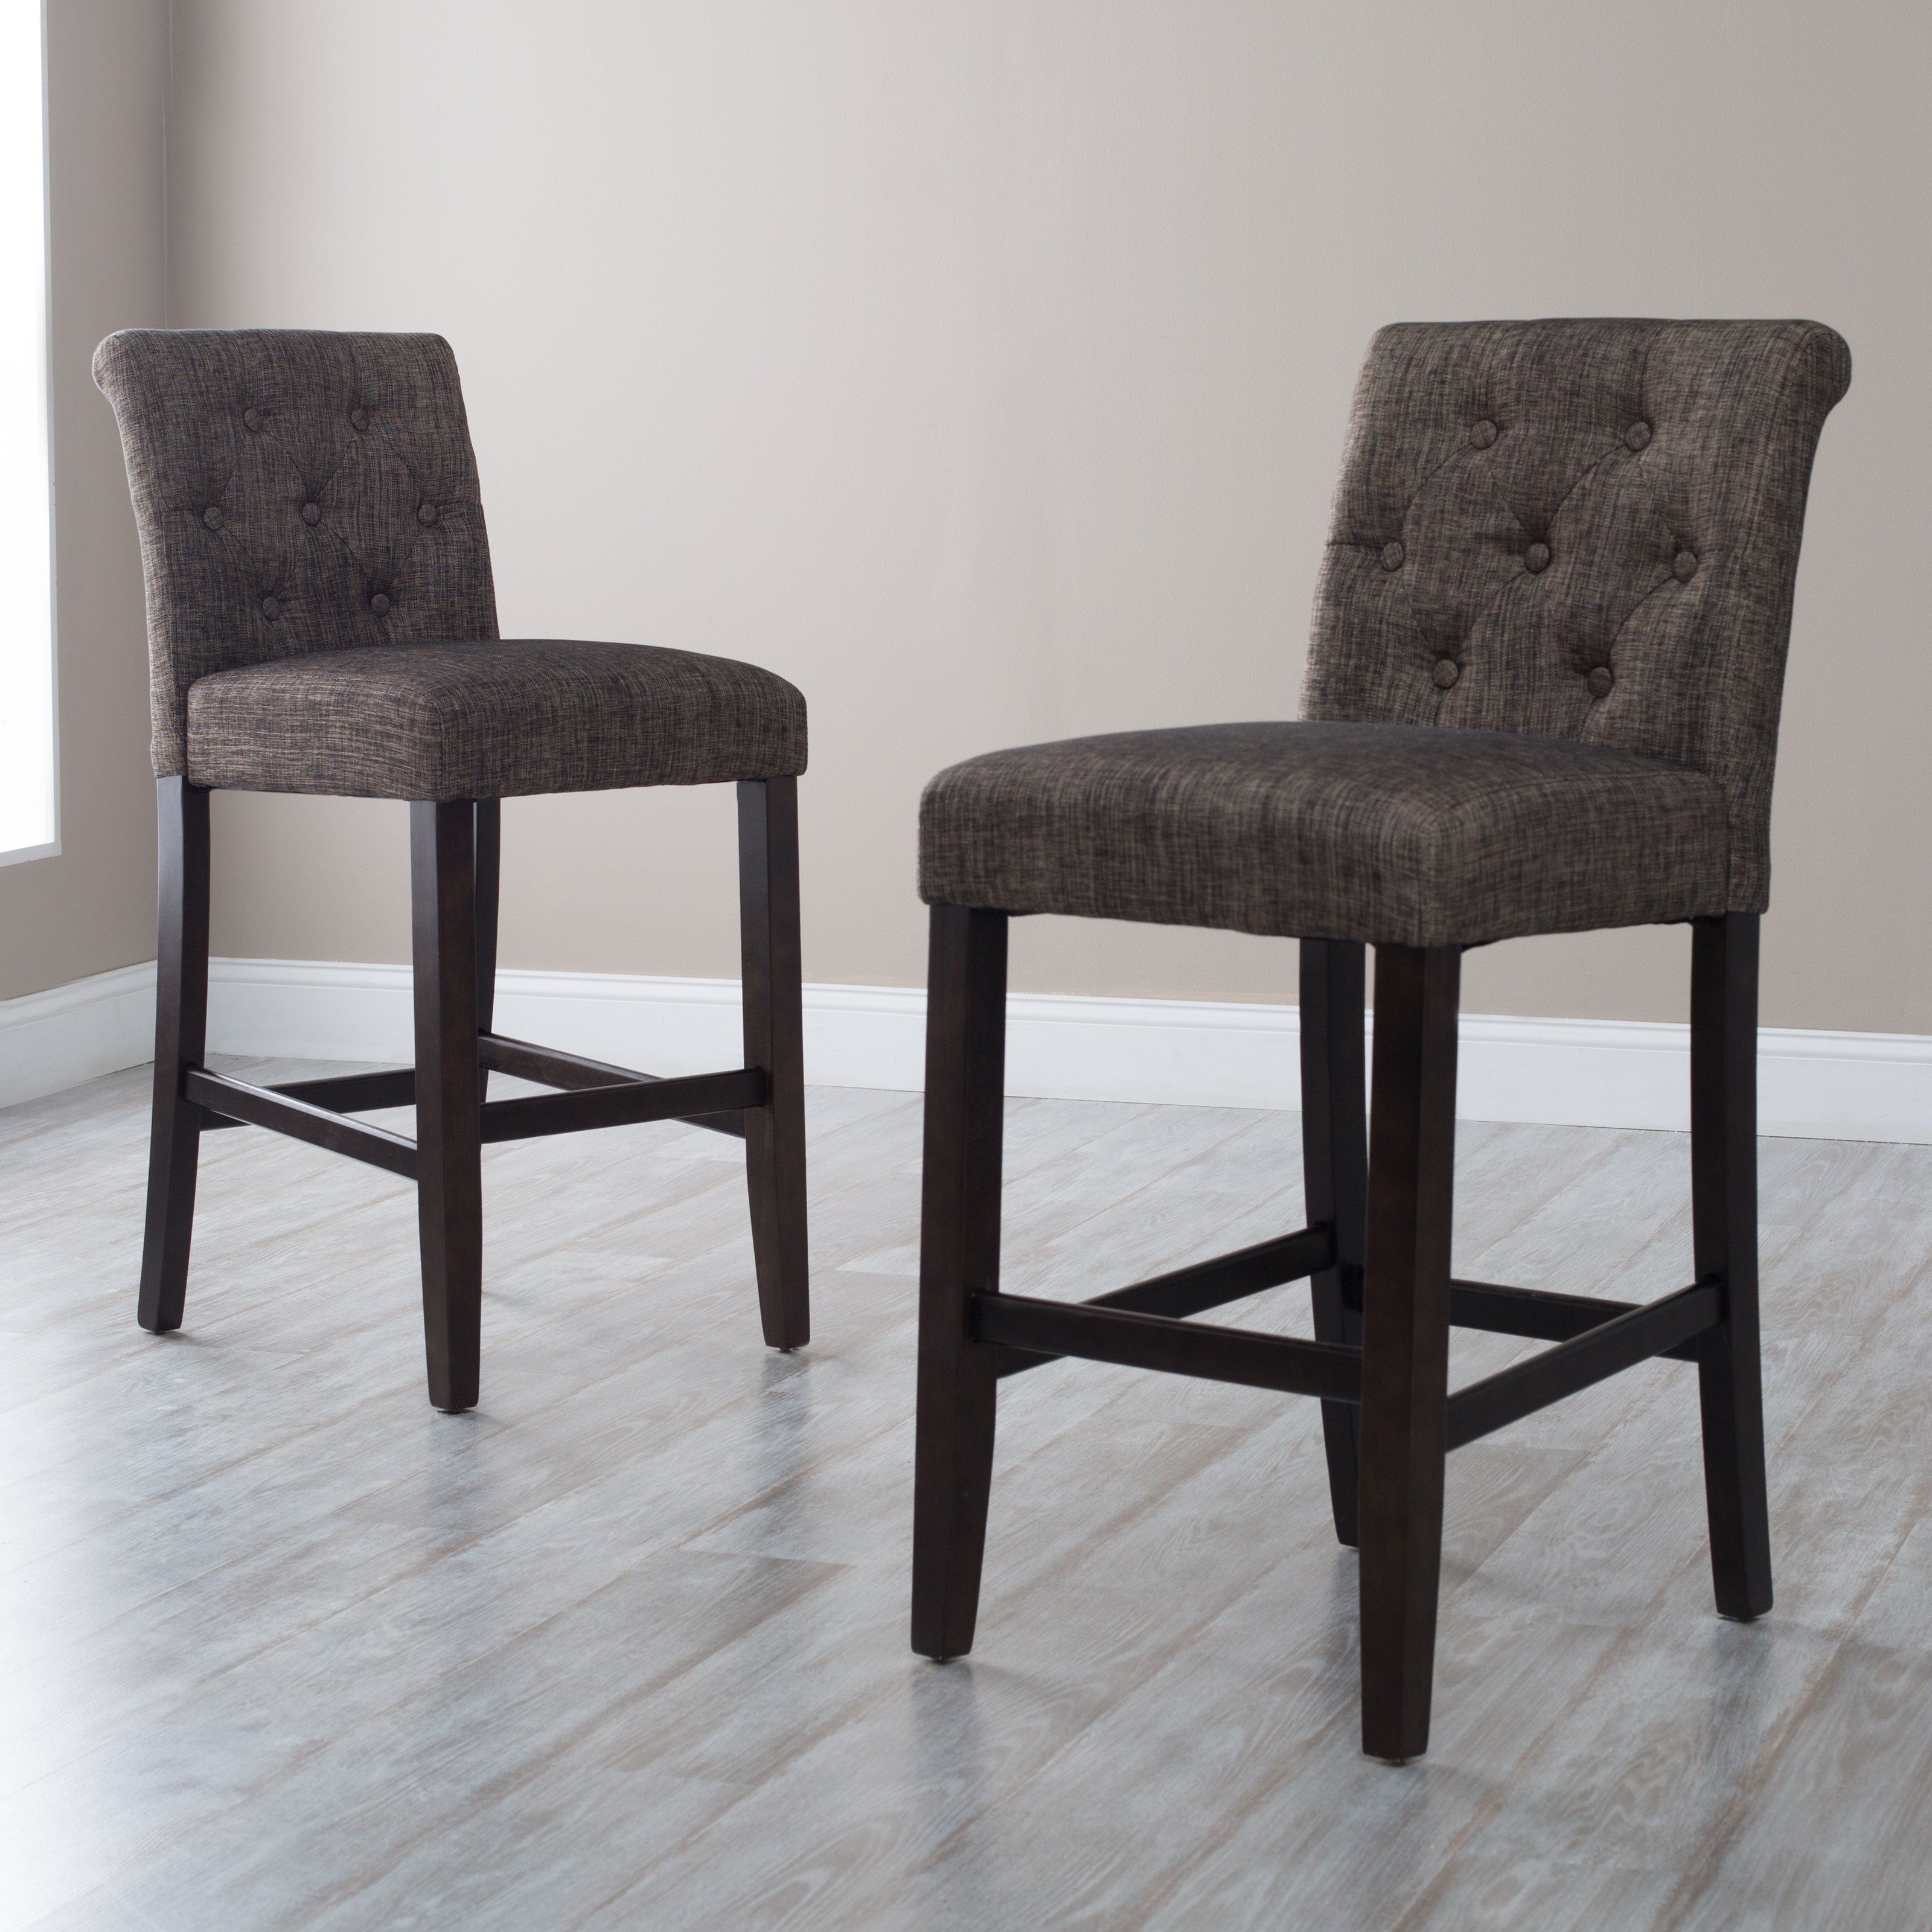 Have to have it Morgana yx Tufted Bar Stool $99 99 hayneedle